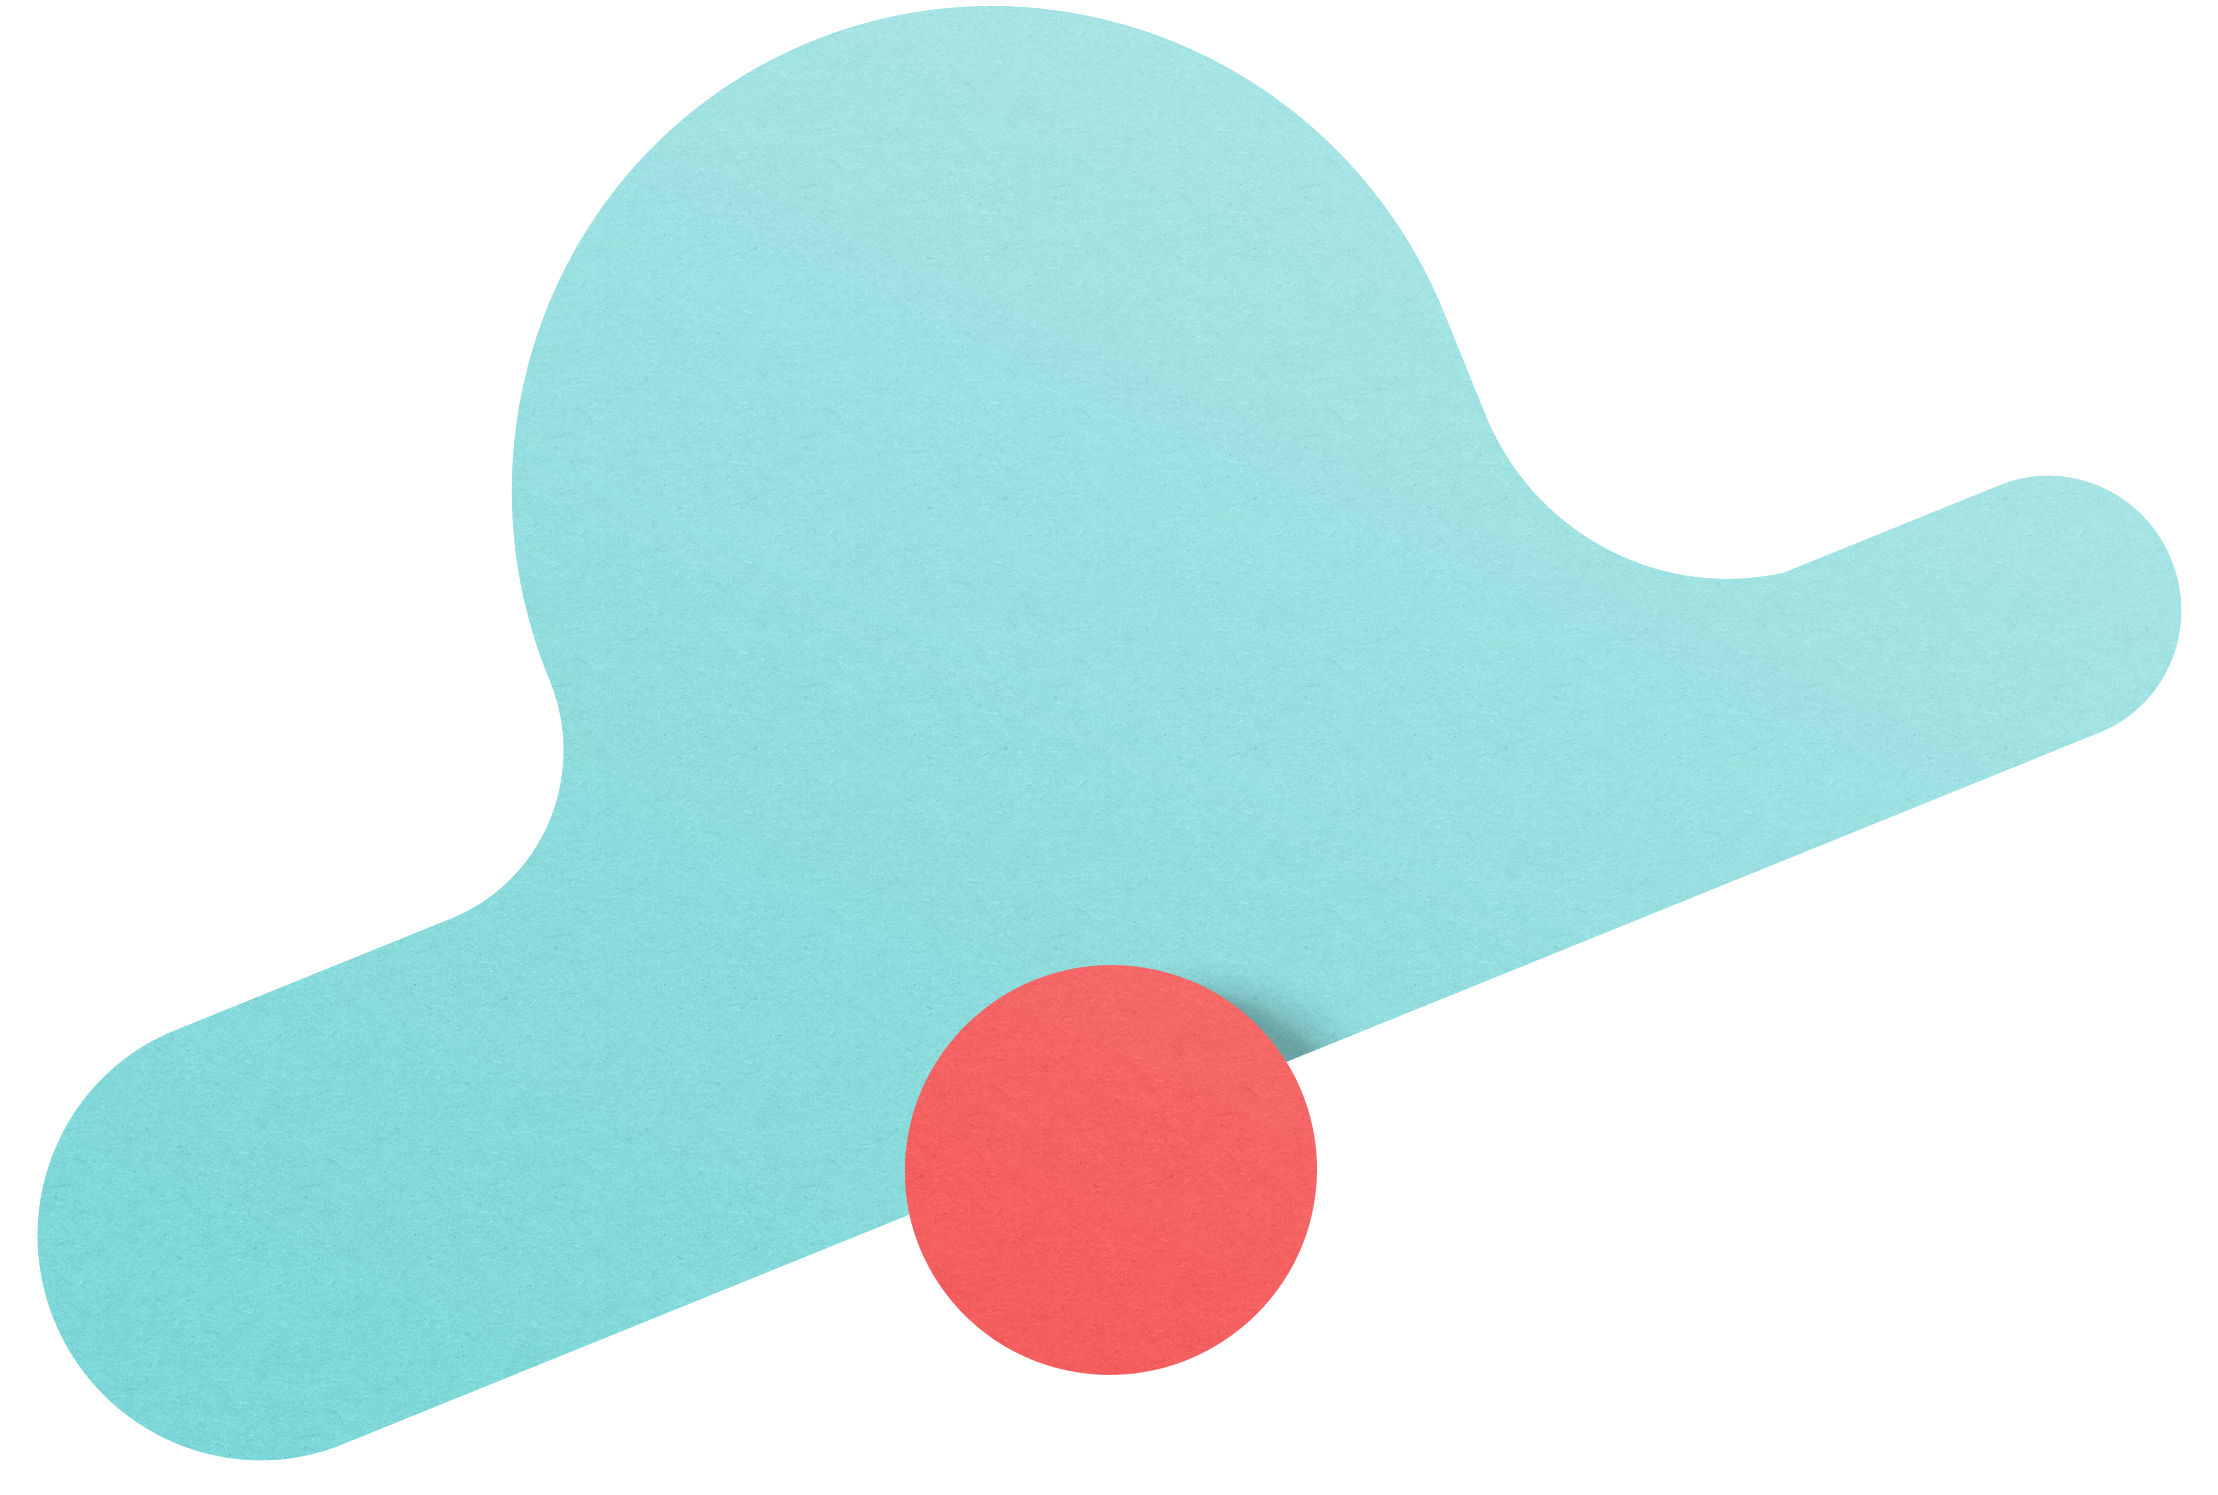 A floating turquoise cloud with a red dot